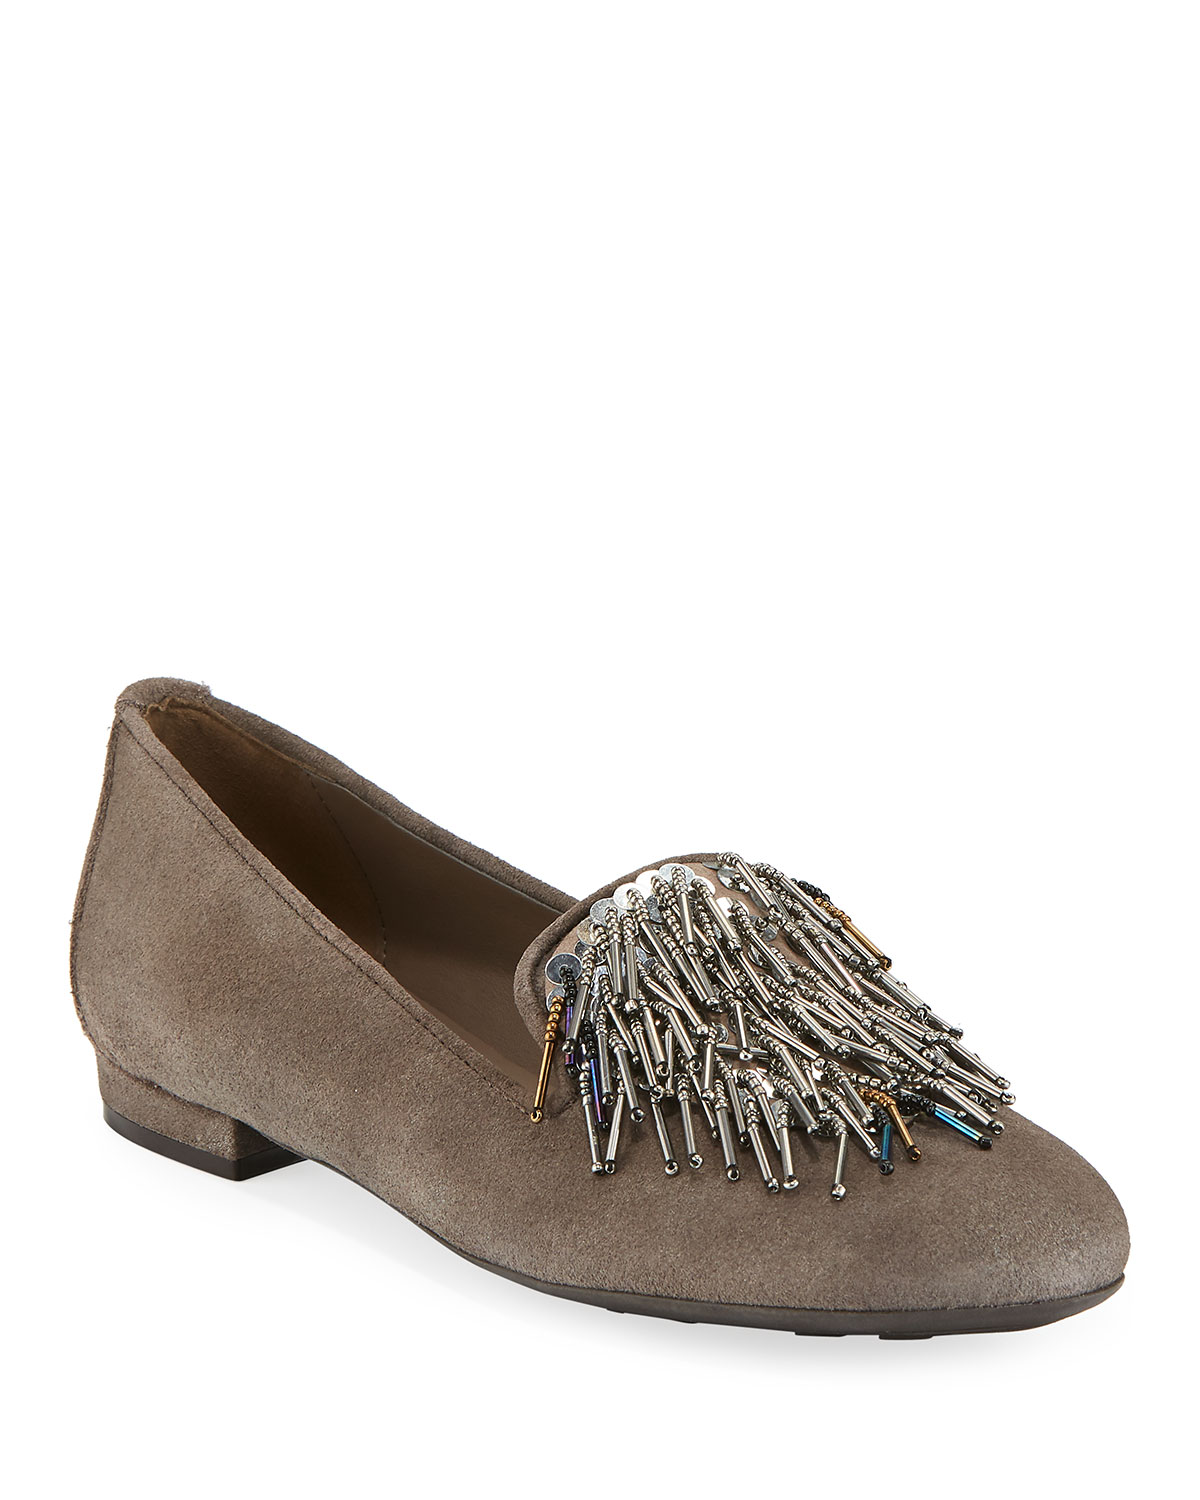 Kamile Embellished Suede Loafers, Taupe